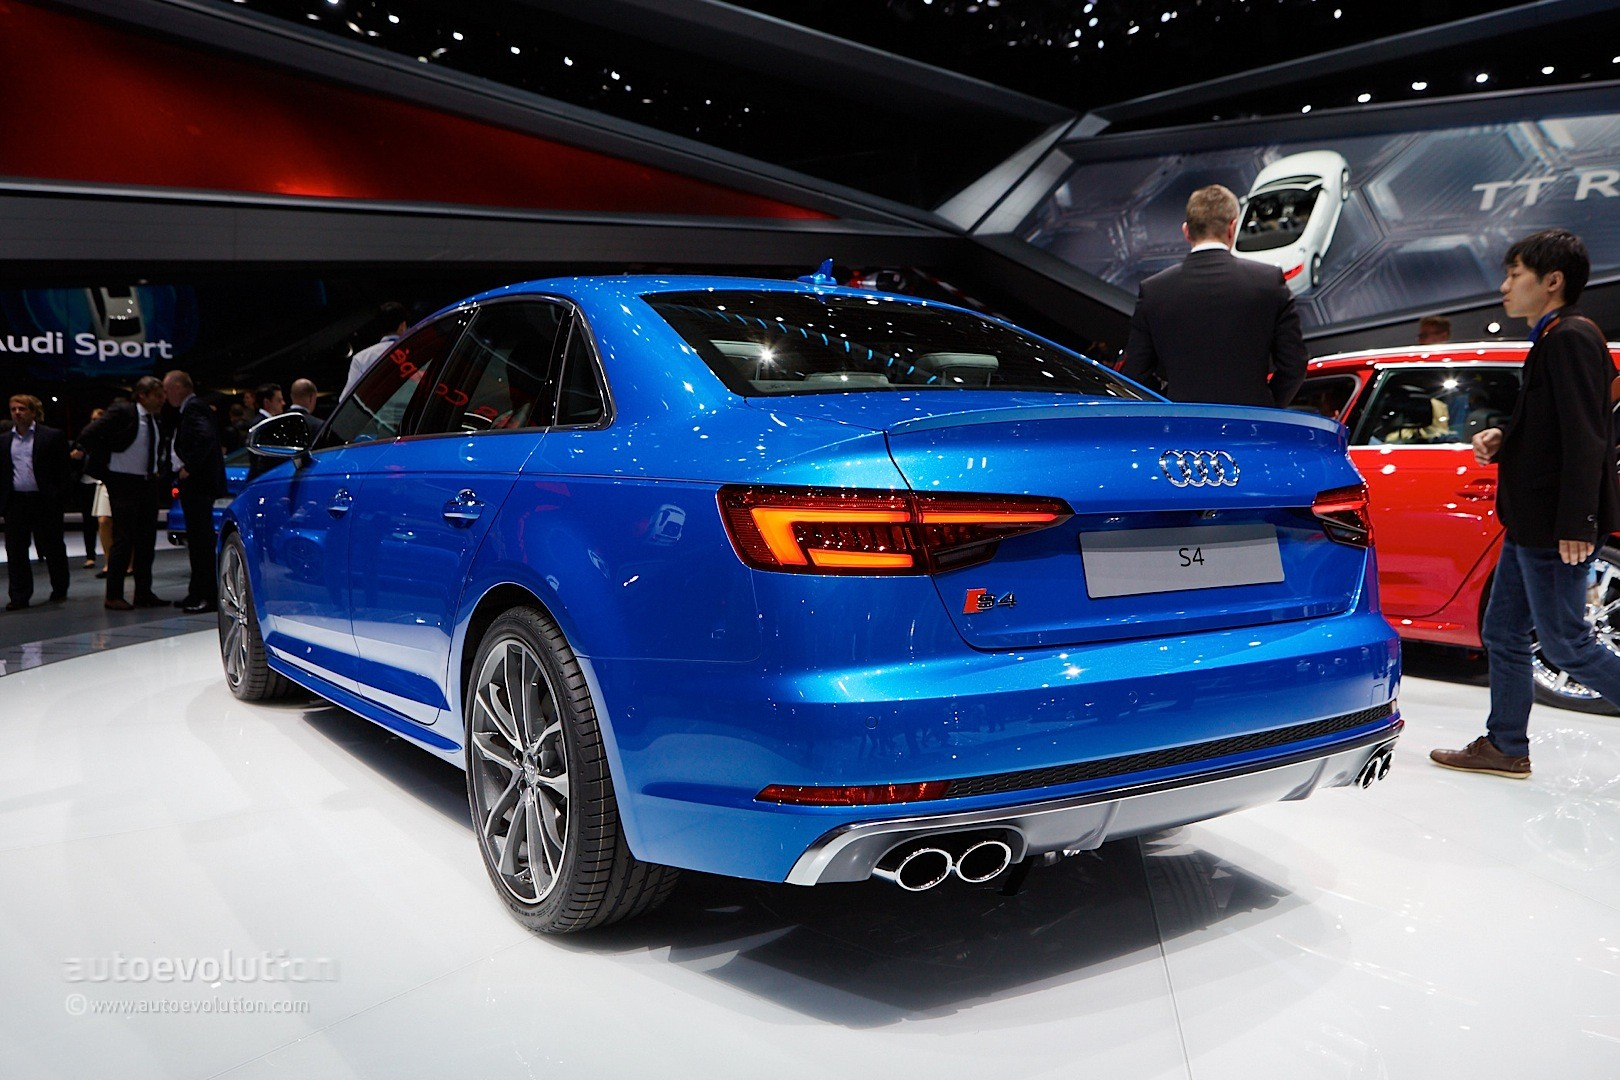 2015 Audi S4 Sedan and Avant Launched in Germany with 354 ...